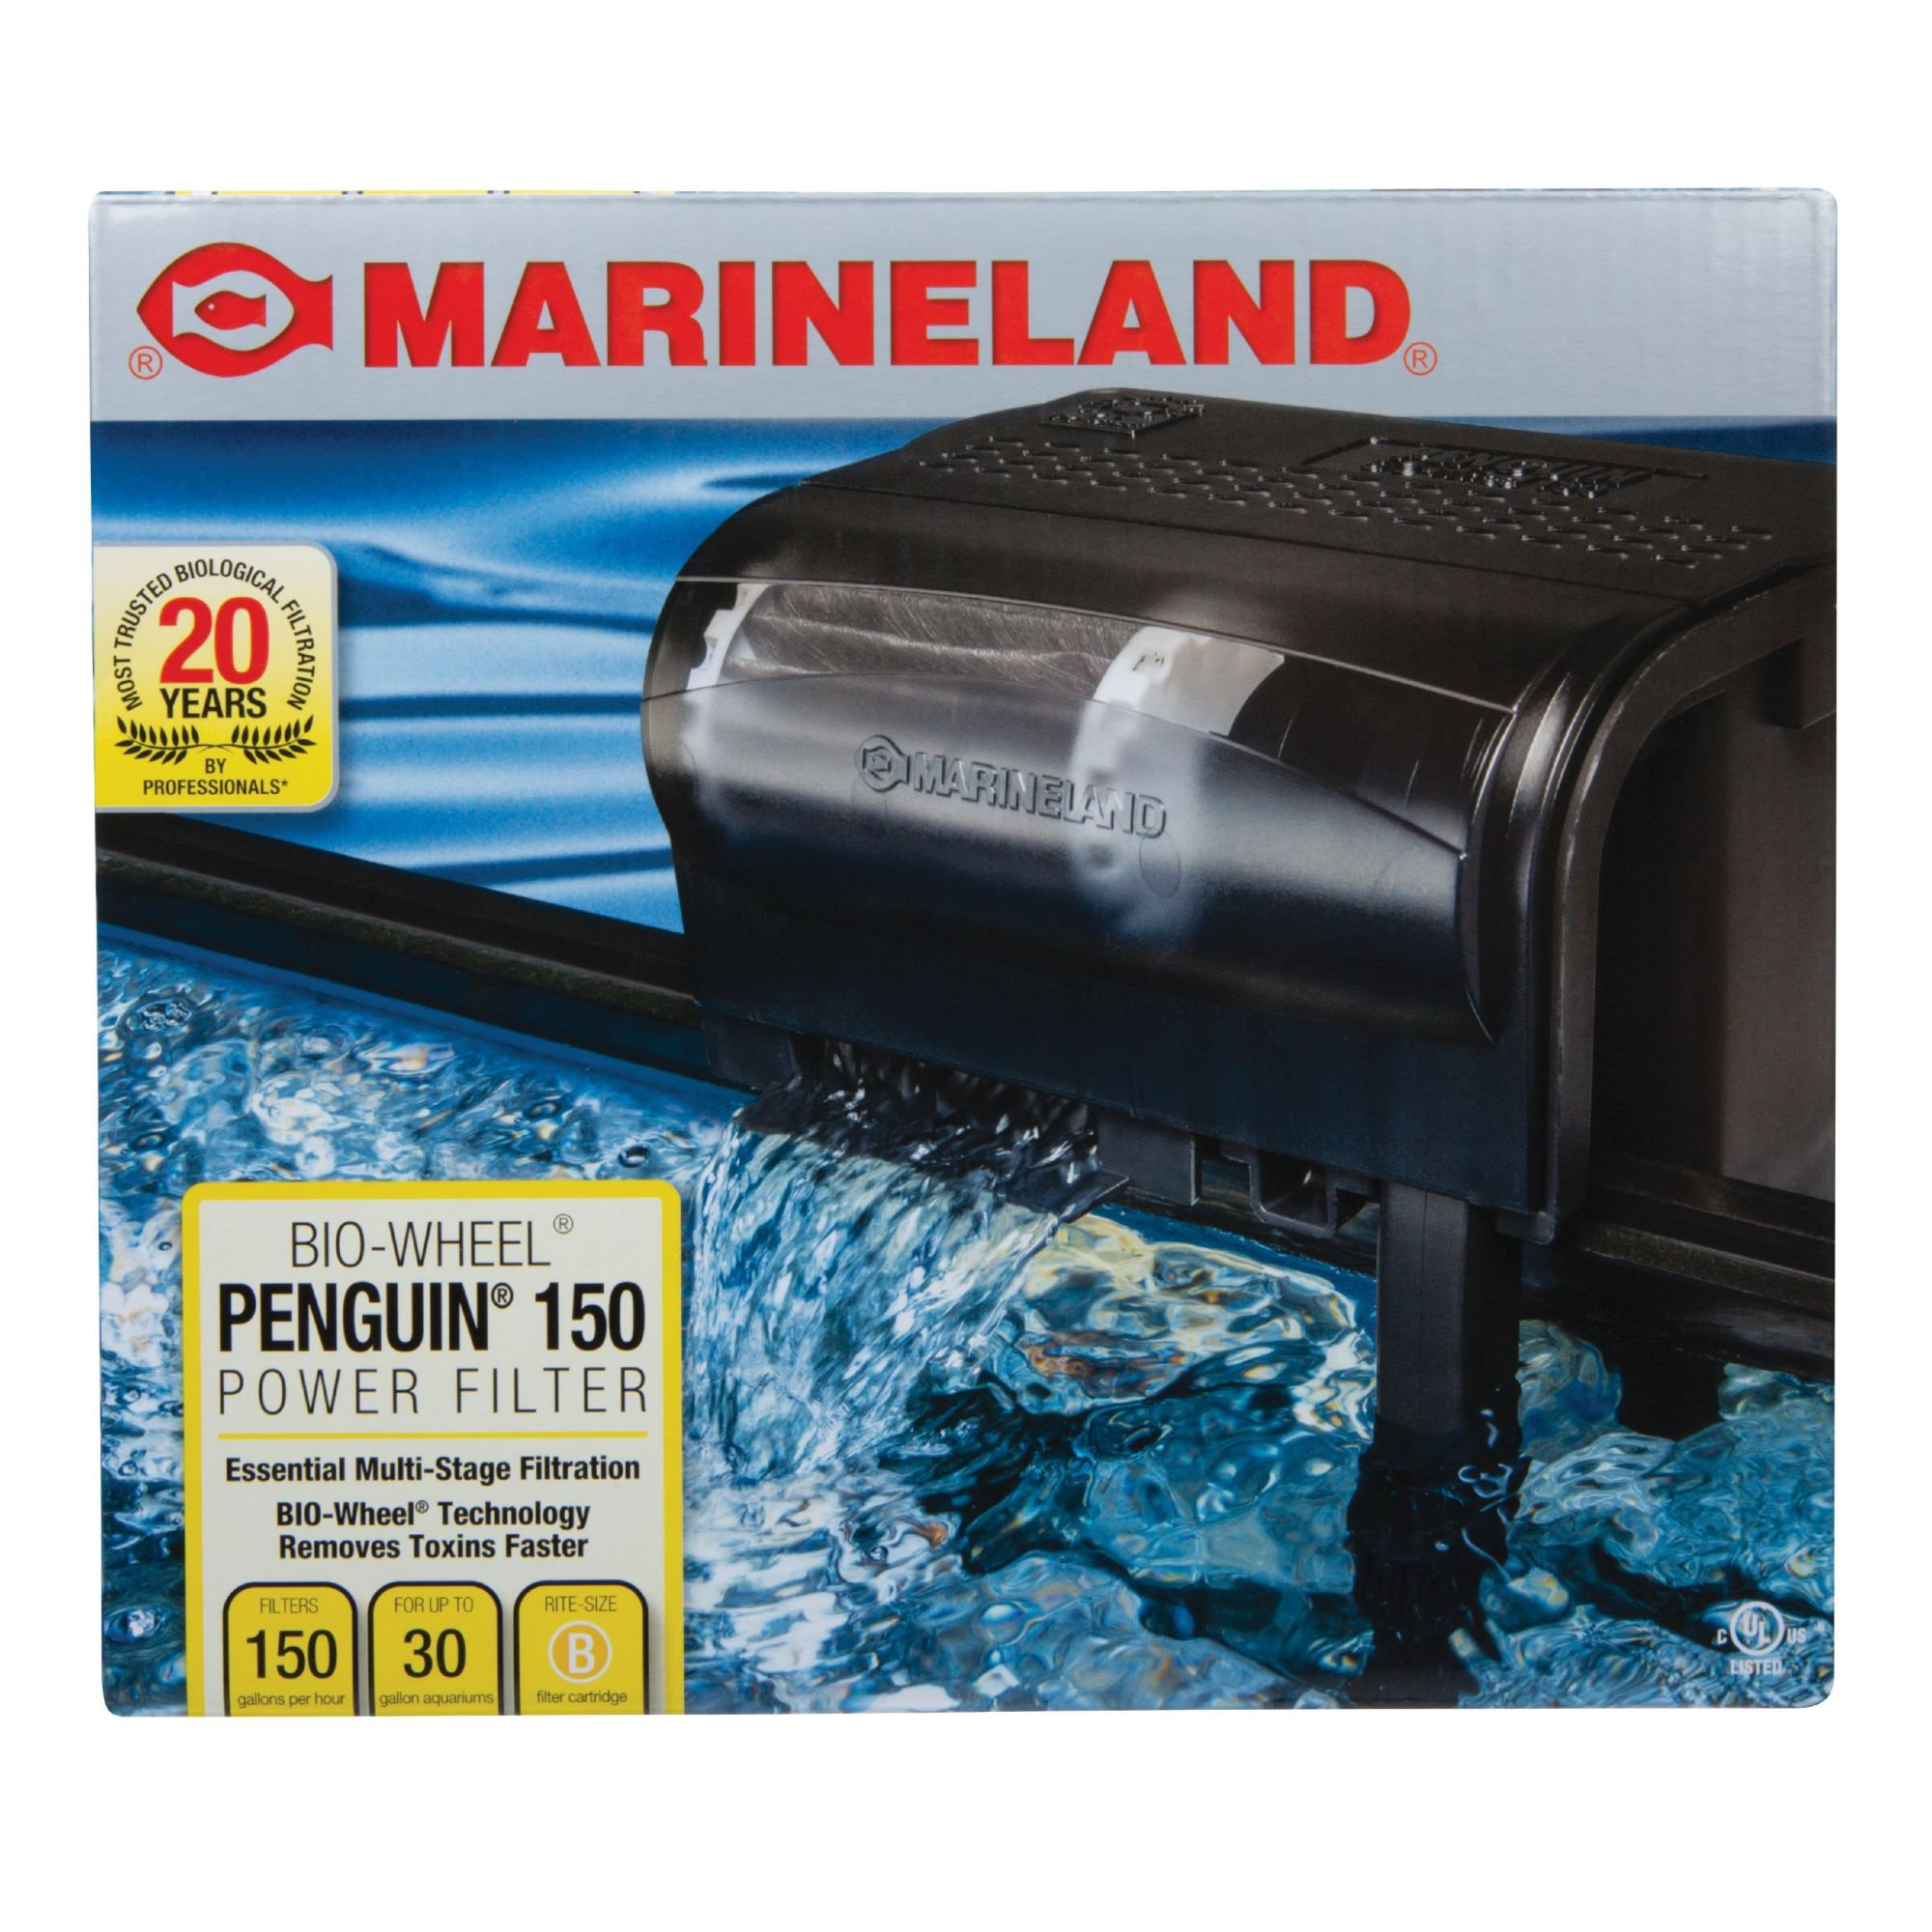 Marineland penguin 150 bio wheel power filter petco for Petco fish tank filters